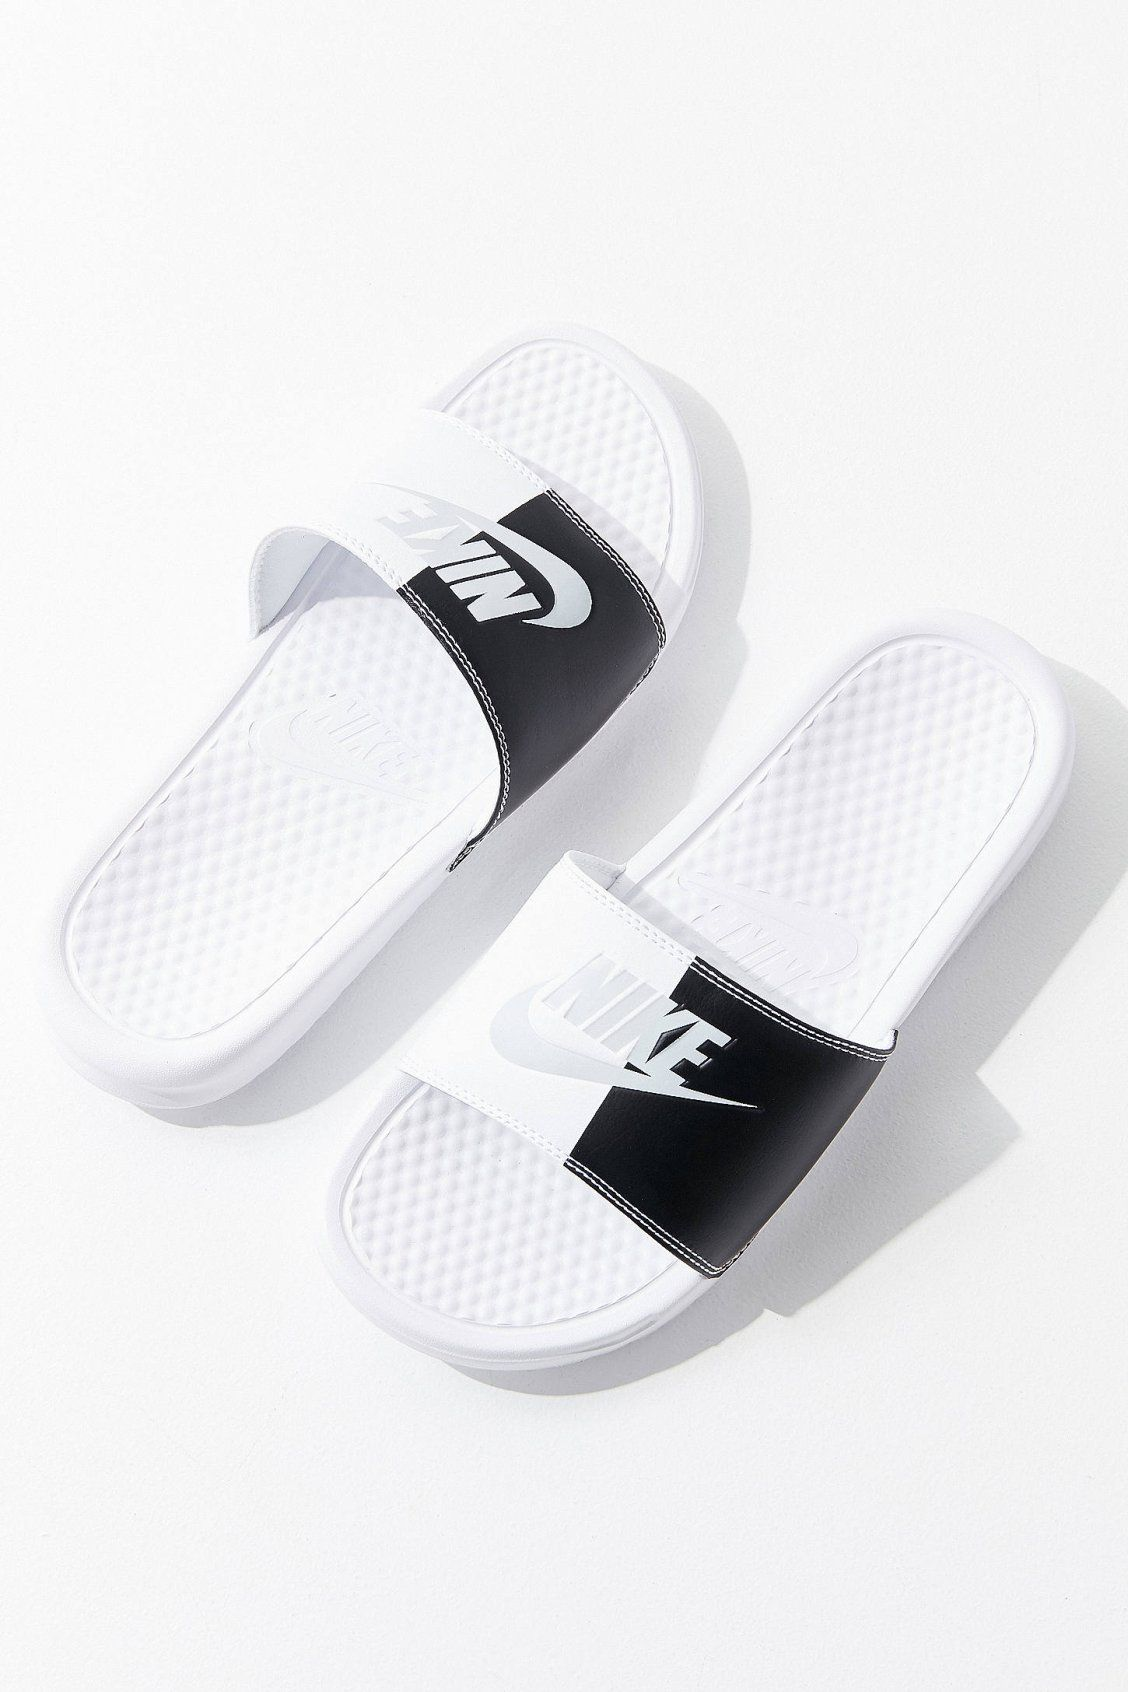 cheap for discount 34386 fc9d0 Nike Benassi JDI Colorblock Slide   Urban Outfitters. Find this Pin and  more on Shoes ...